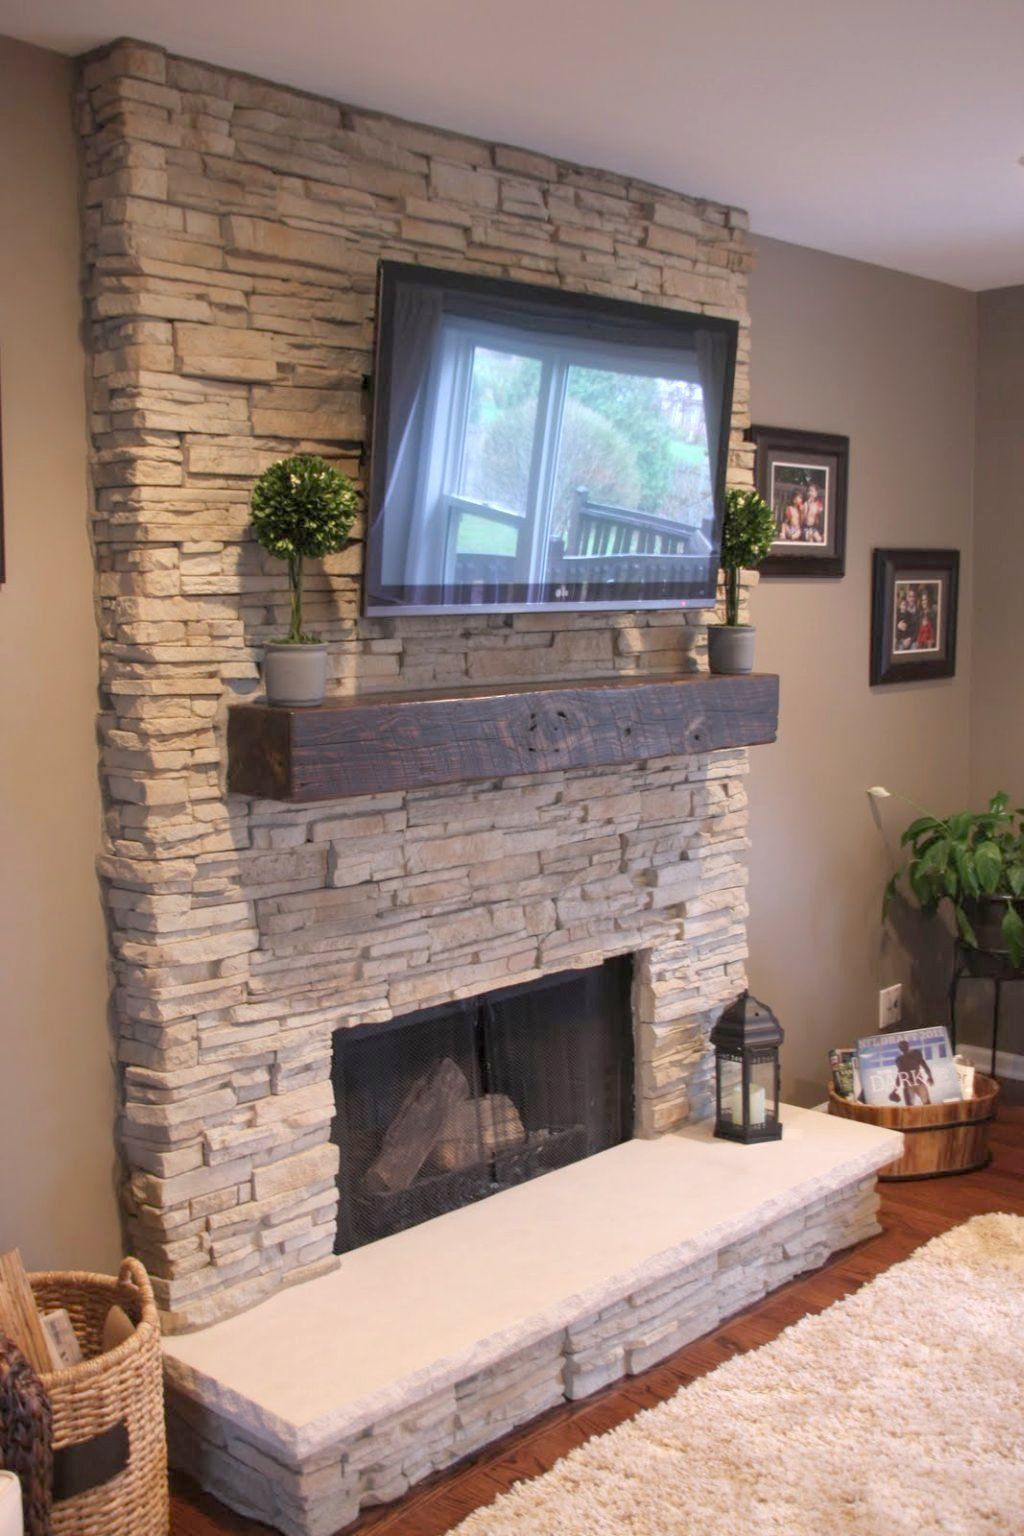 Nice Install Stacked Stone Fireplace   Get Inspired With This Amazing Photo Of Stack Stone Fireplaces With Plasma  TV Mounted. You